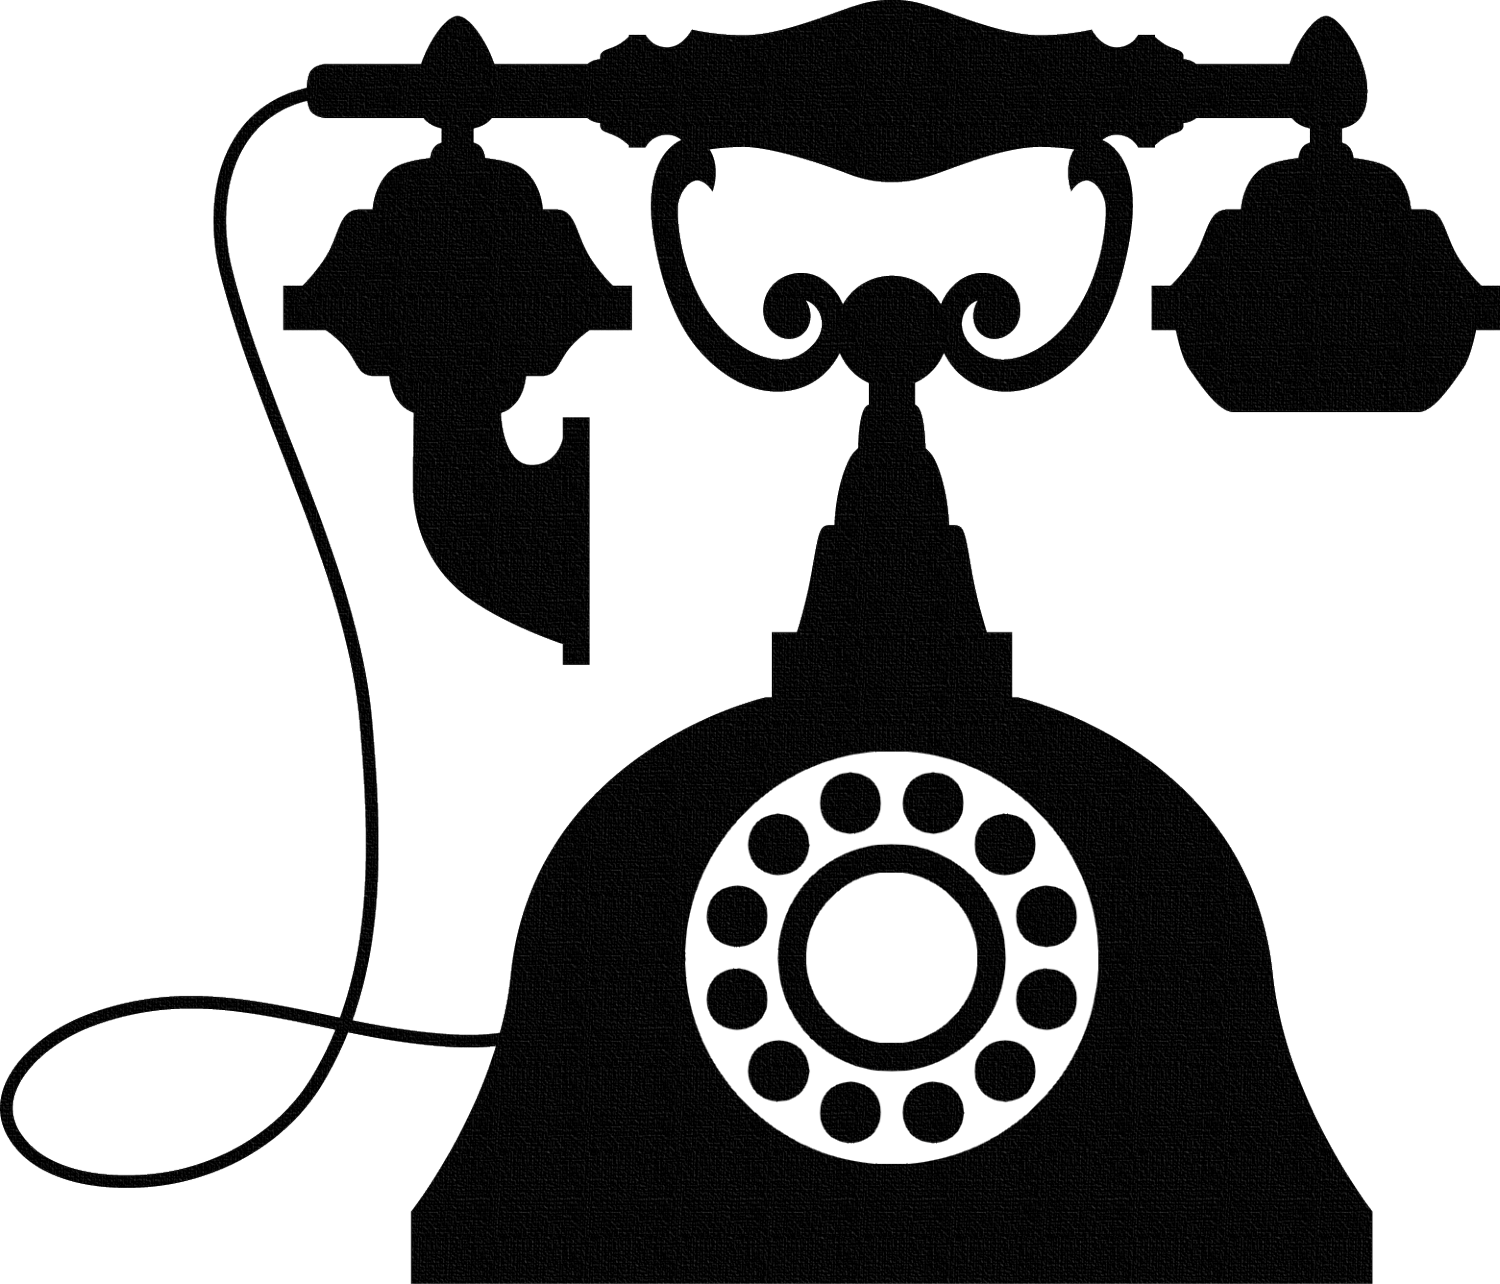 Vintage wall sticker phone. Telephone clipart old fashioned telephone